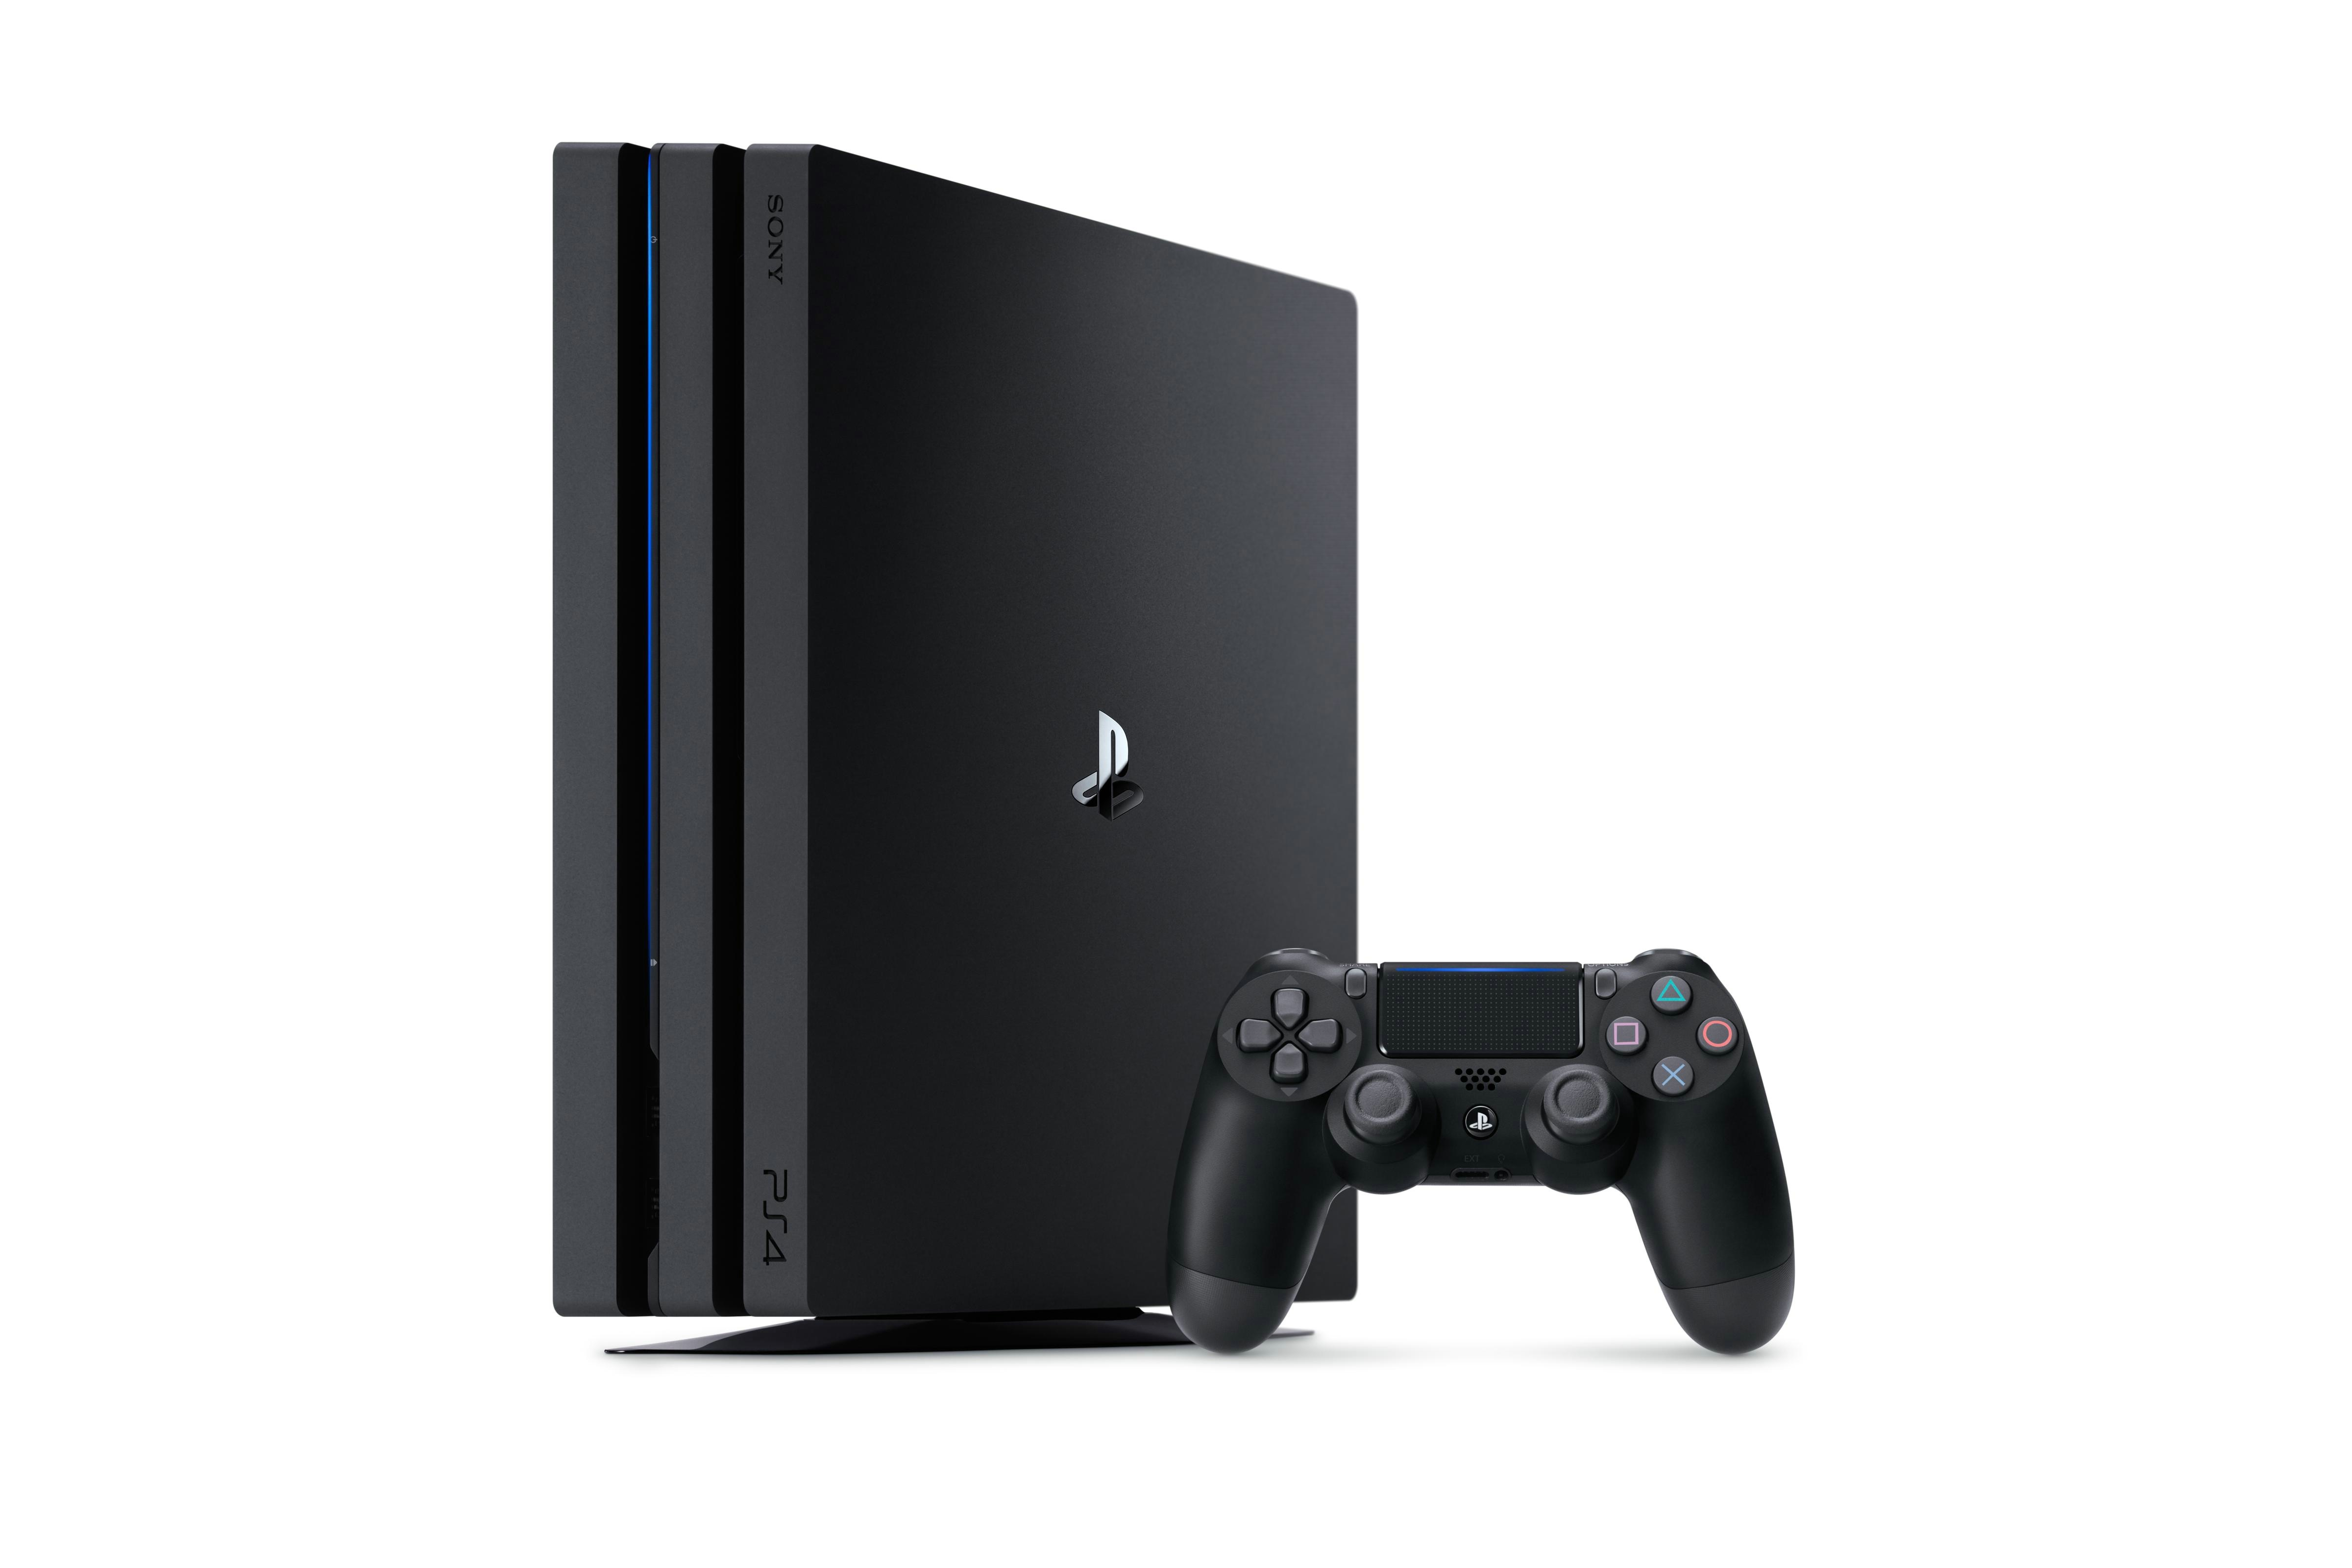 playstation-4-ps4-pro-cuh-7000-1